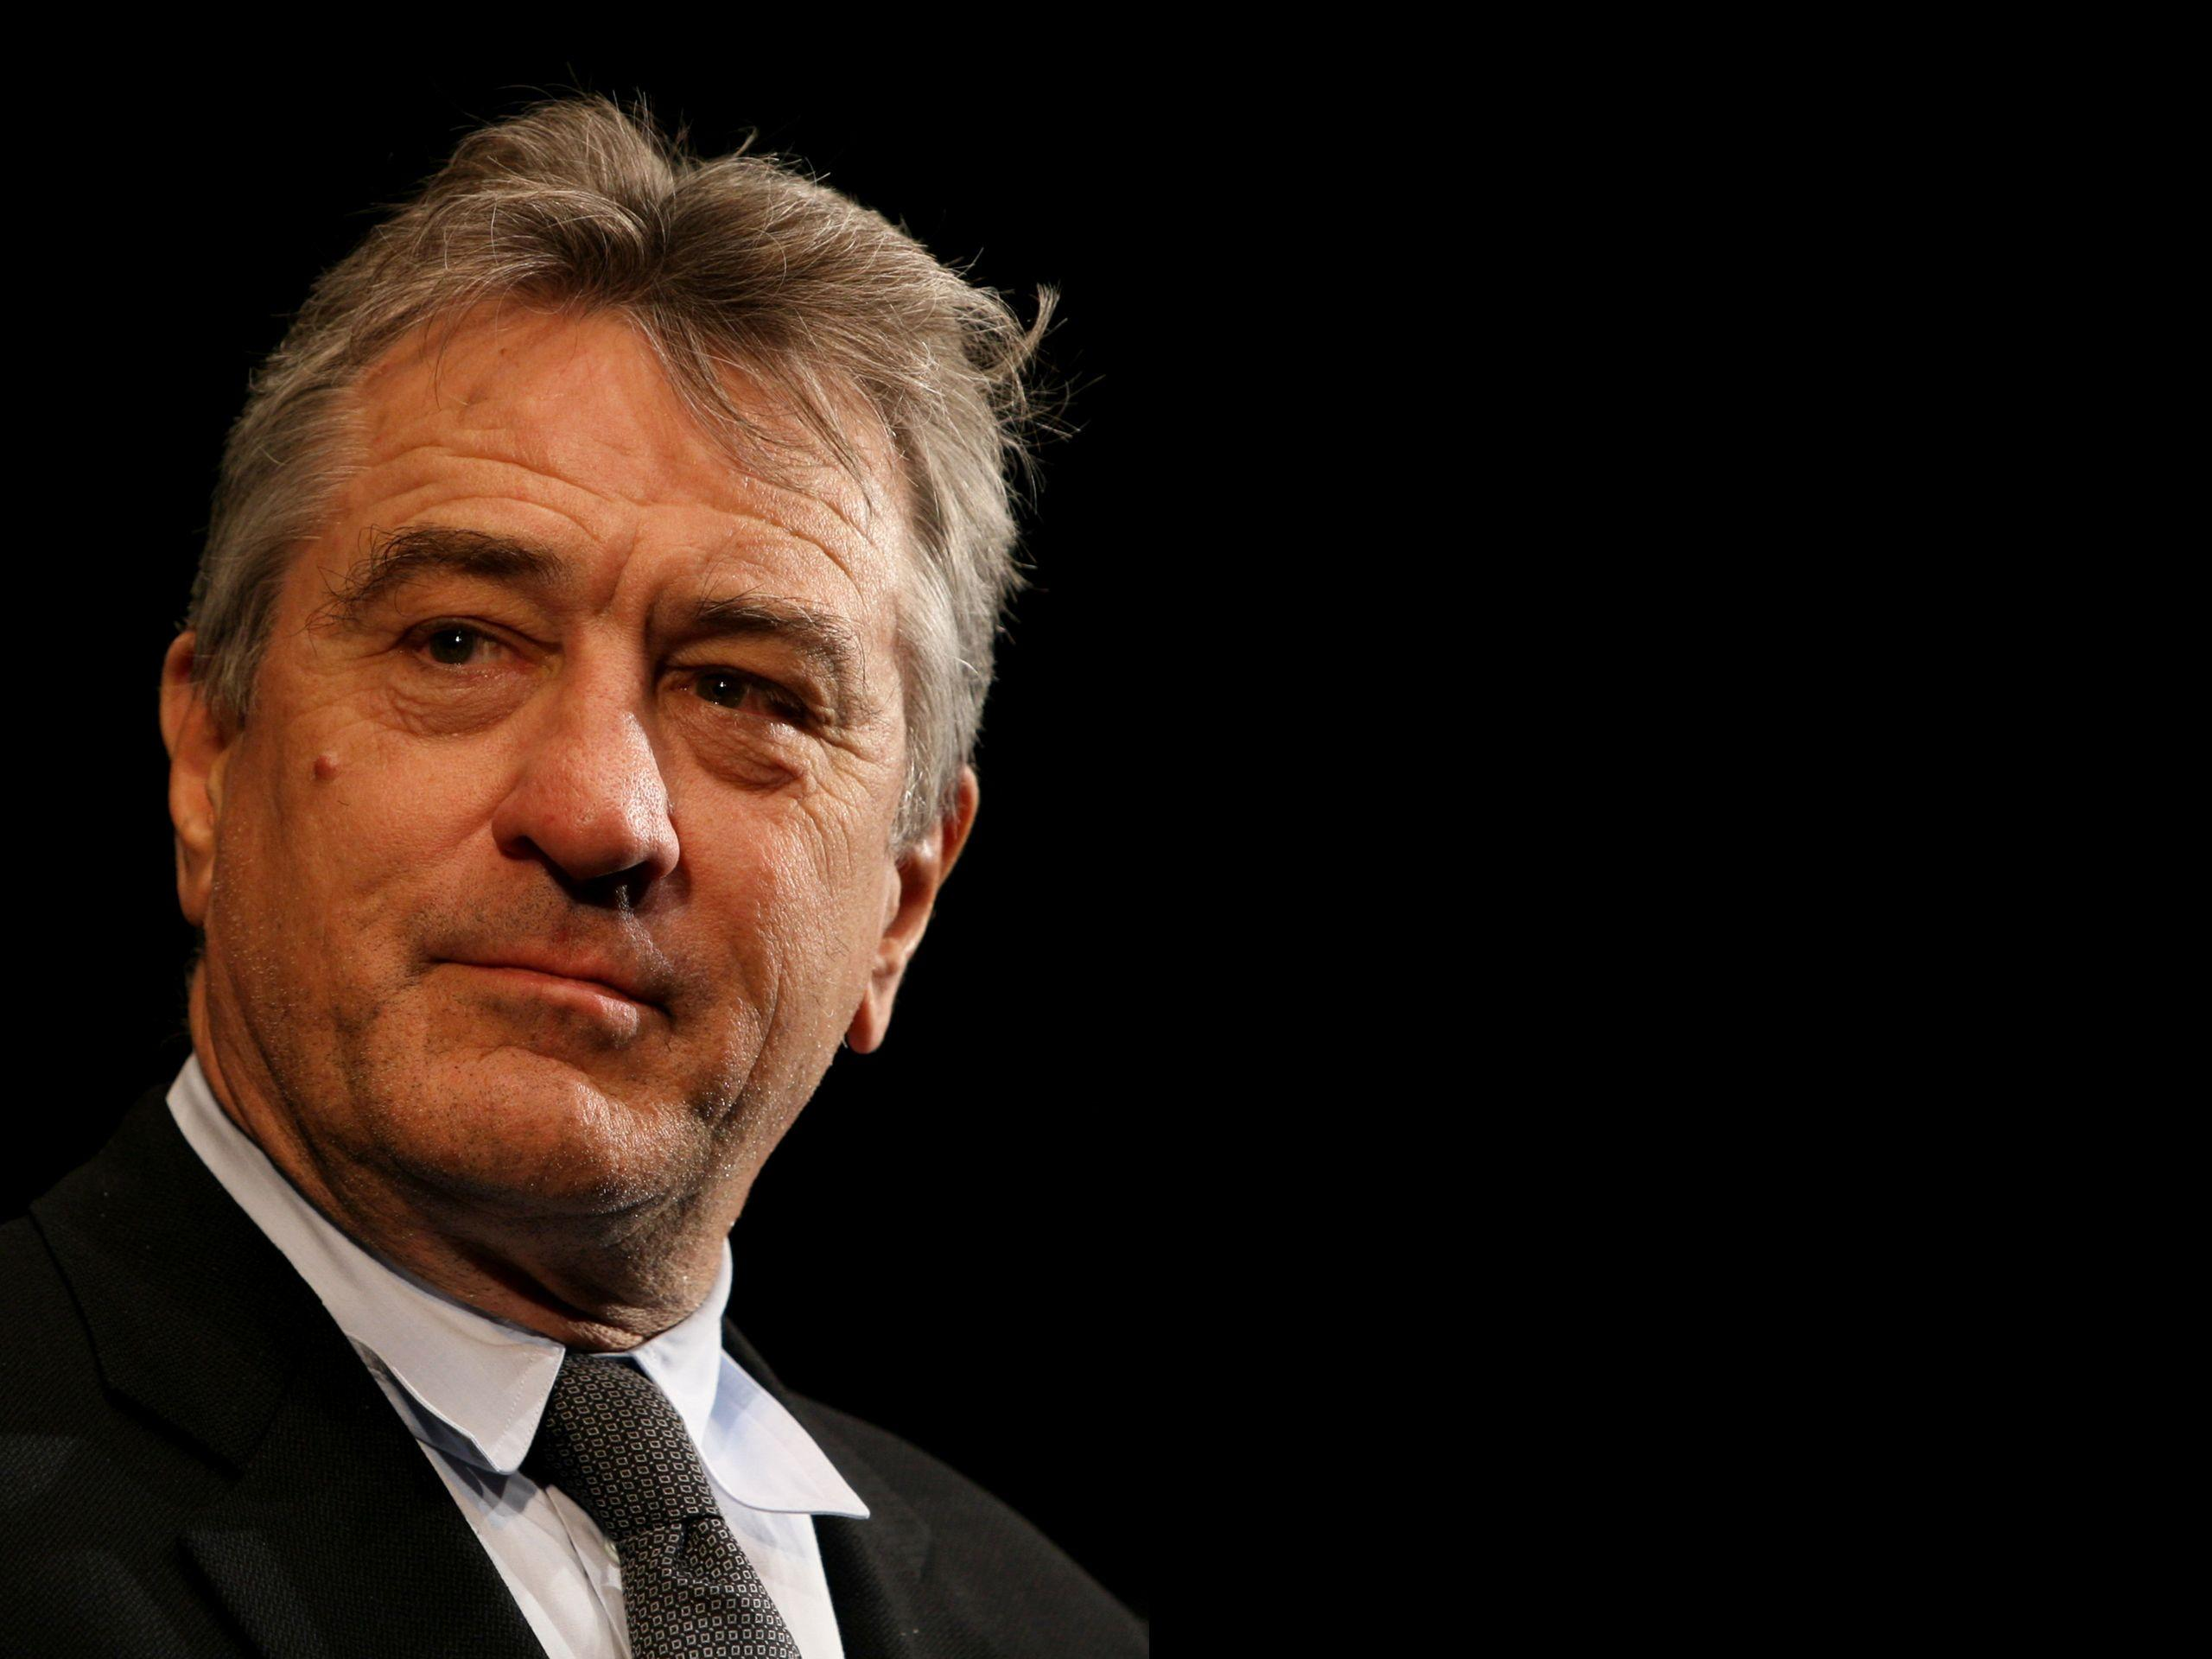 Robert De Niro Wallpapers High Resolution and Quality Download